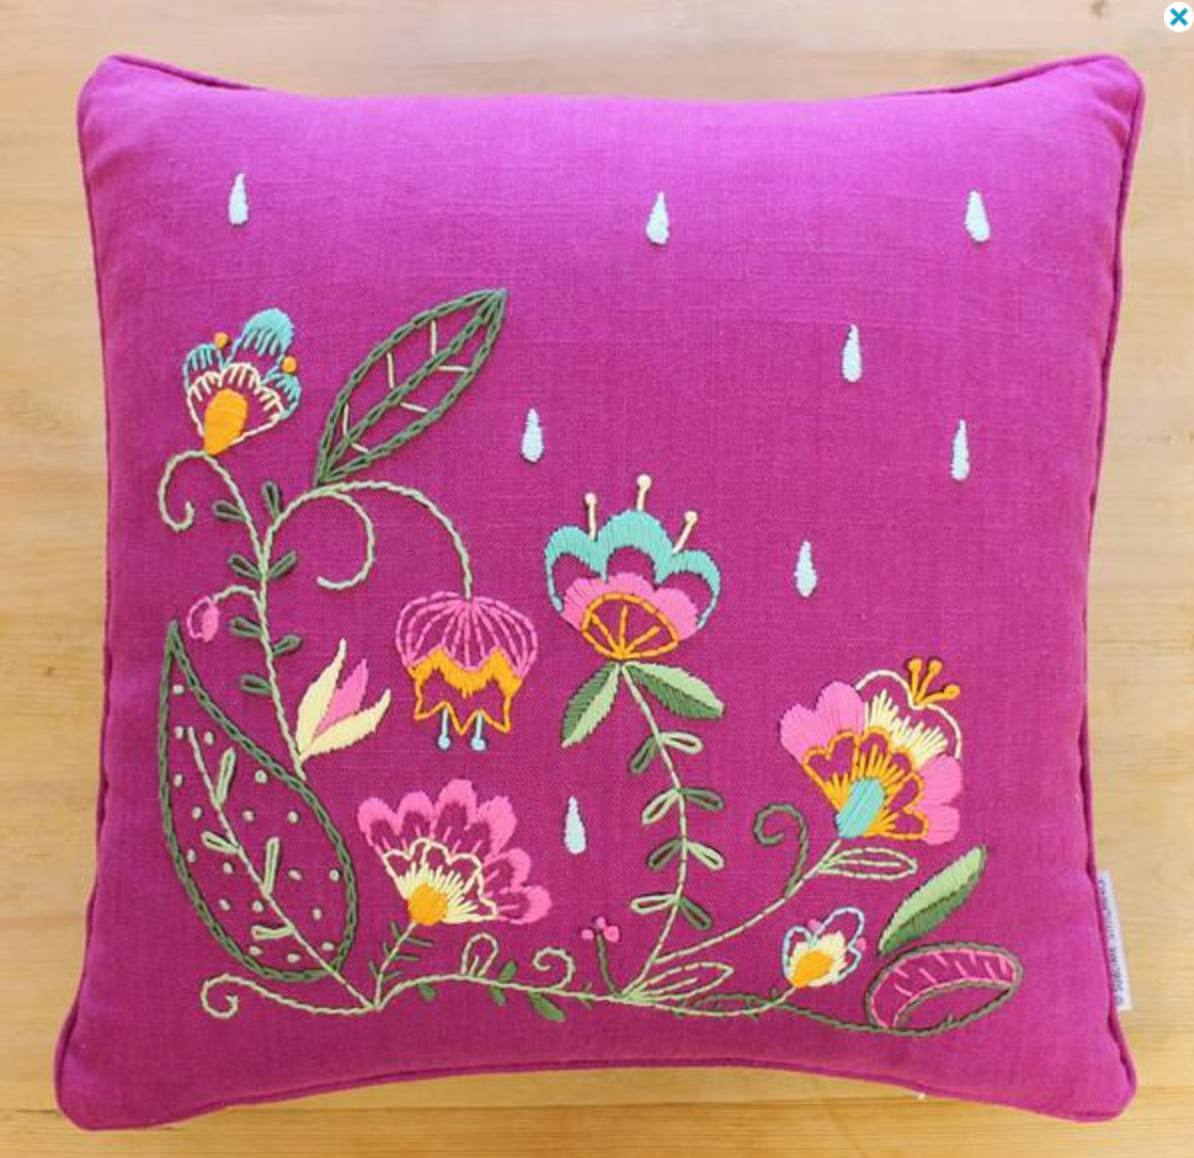 Bright pink pillow with flower embroidery.